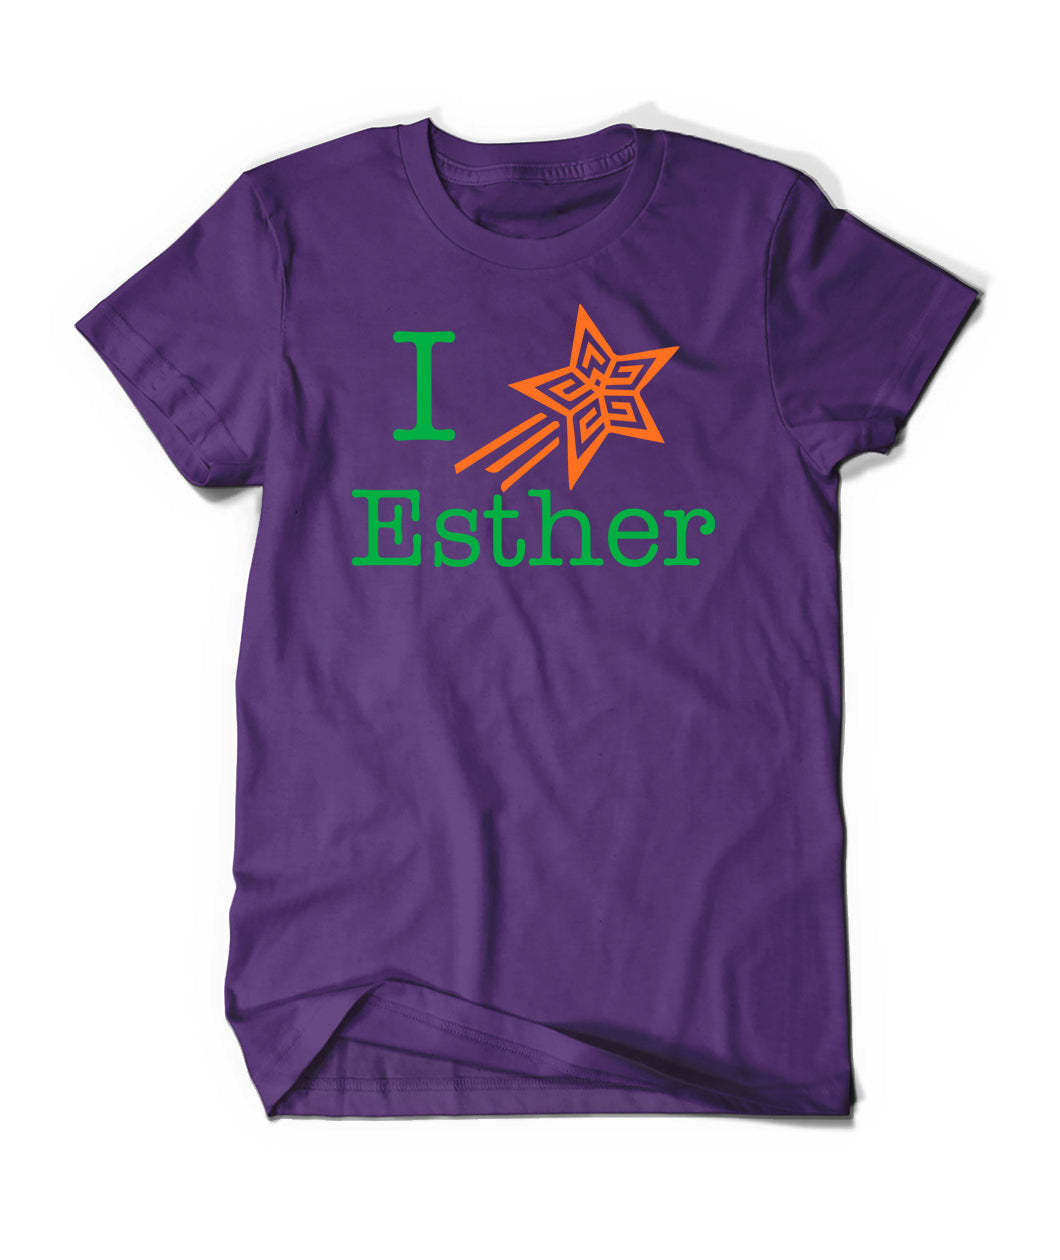 I Star Esther Shirt